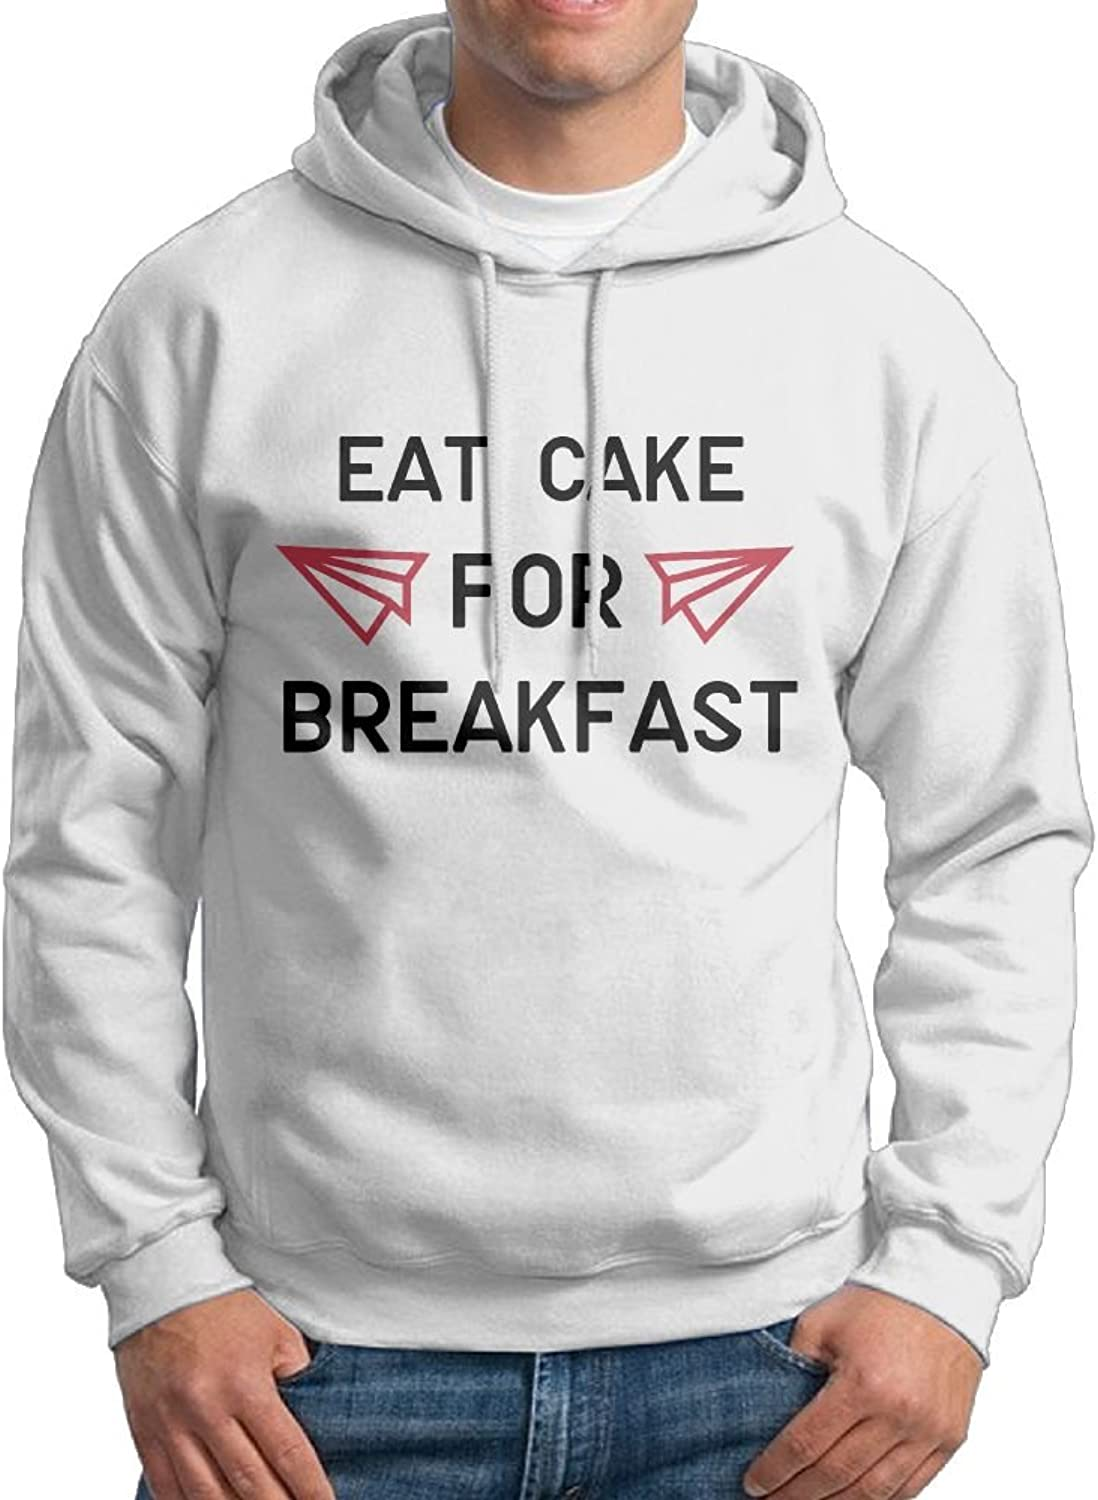 - - - Eat Cake For Breakfast Man Cotton Suit Sweatershirt bb052c